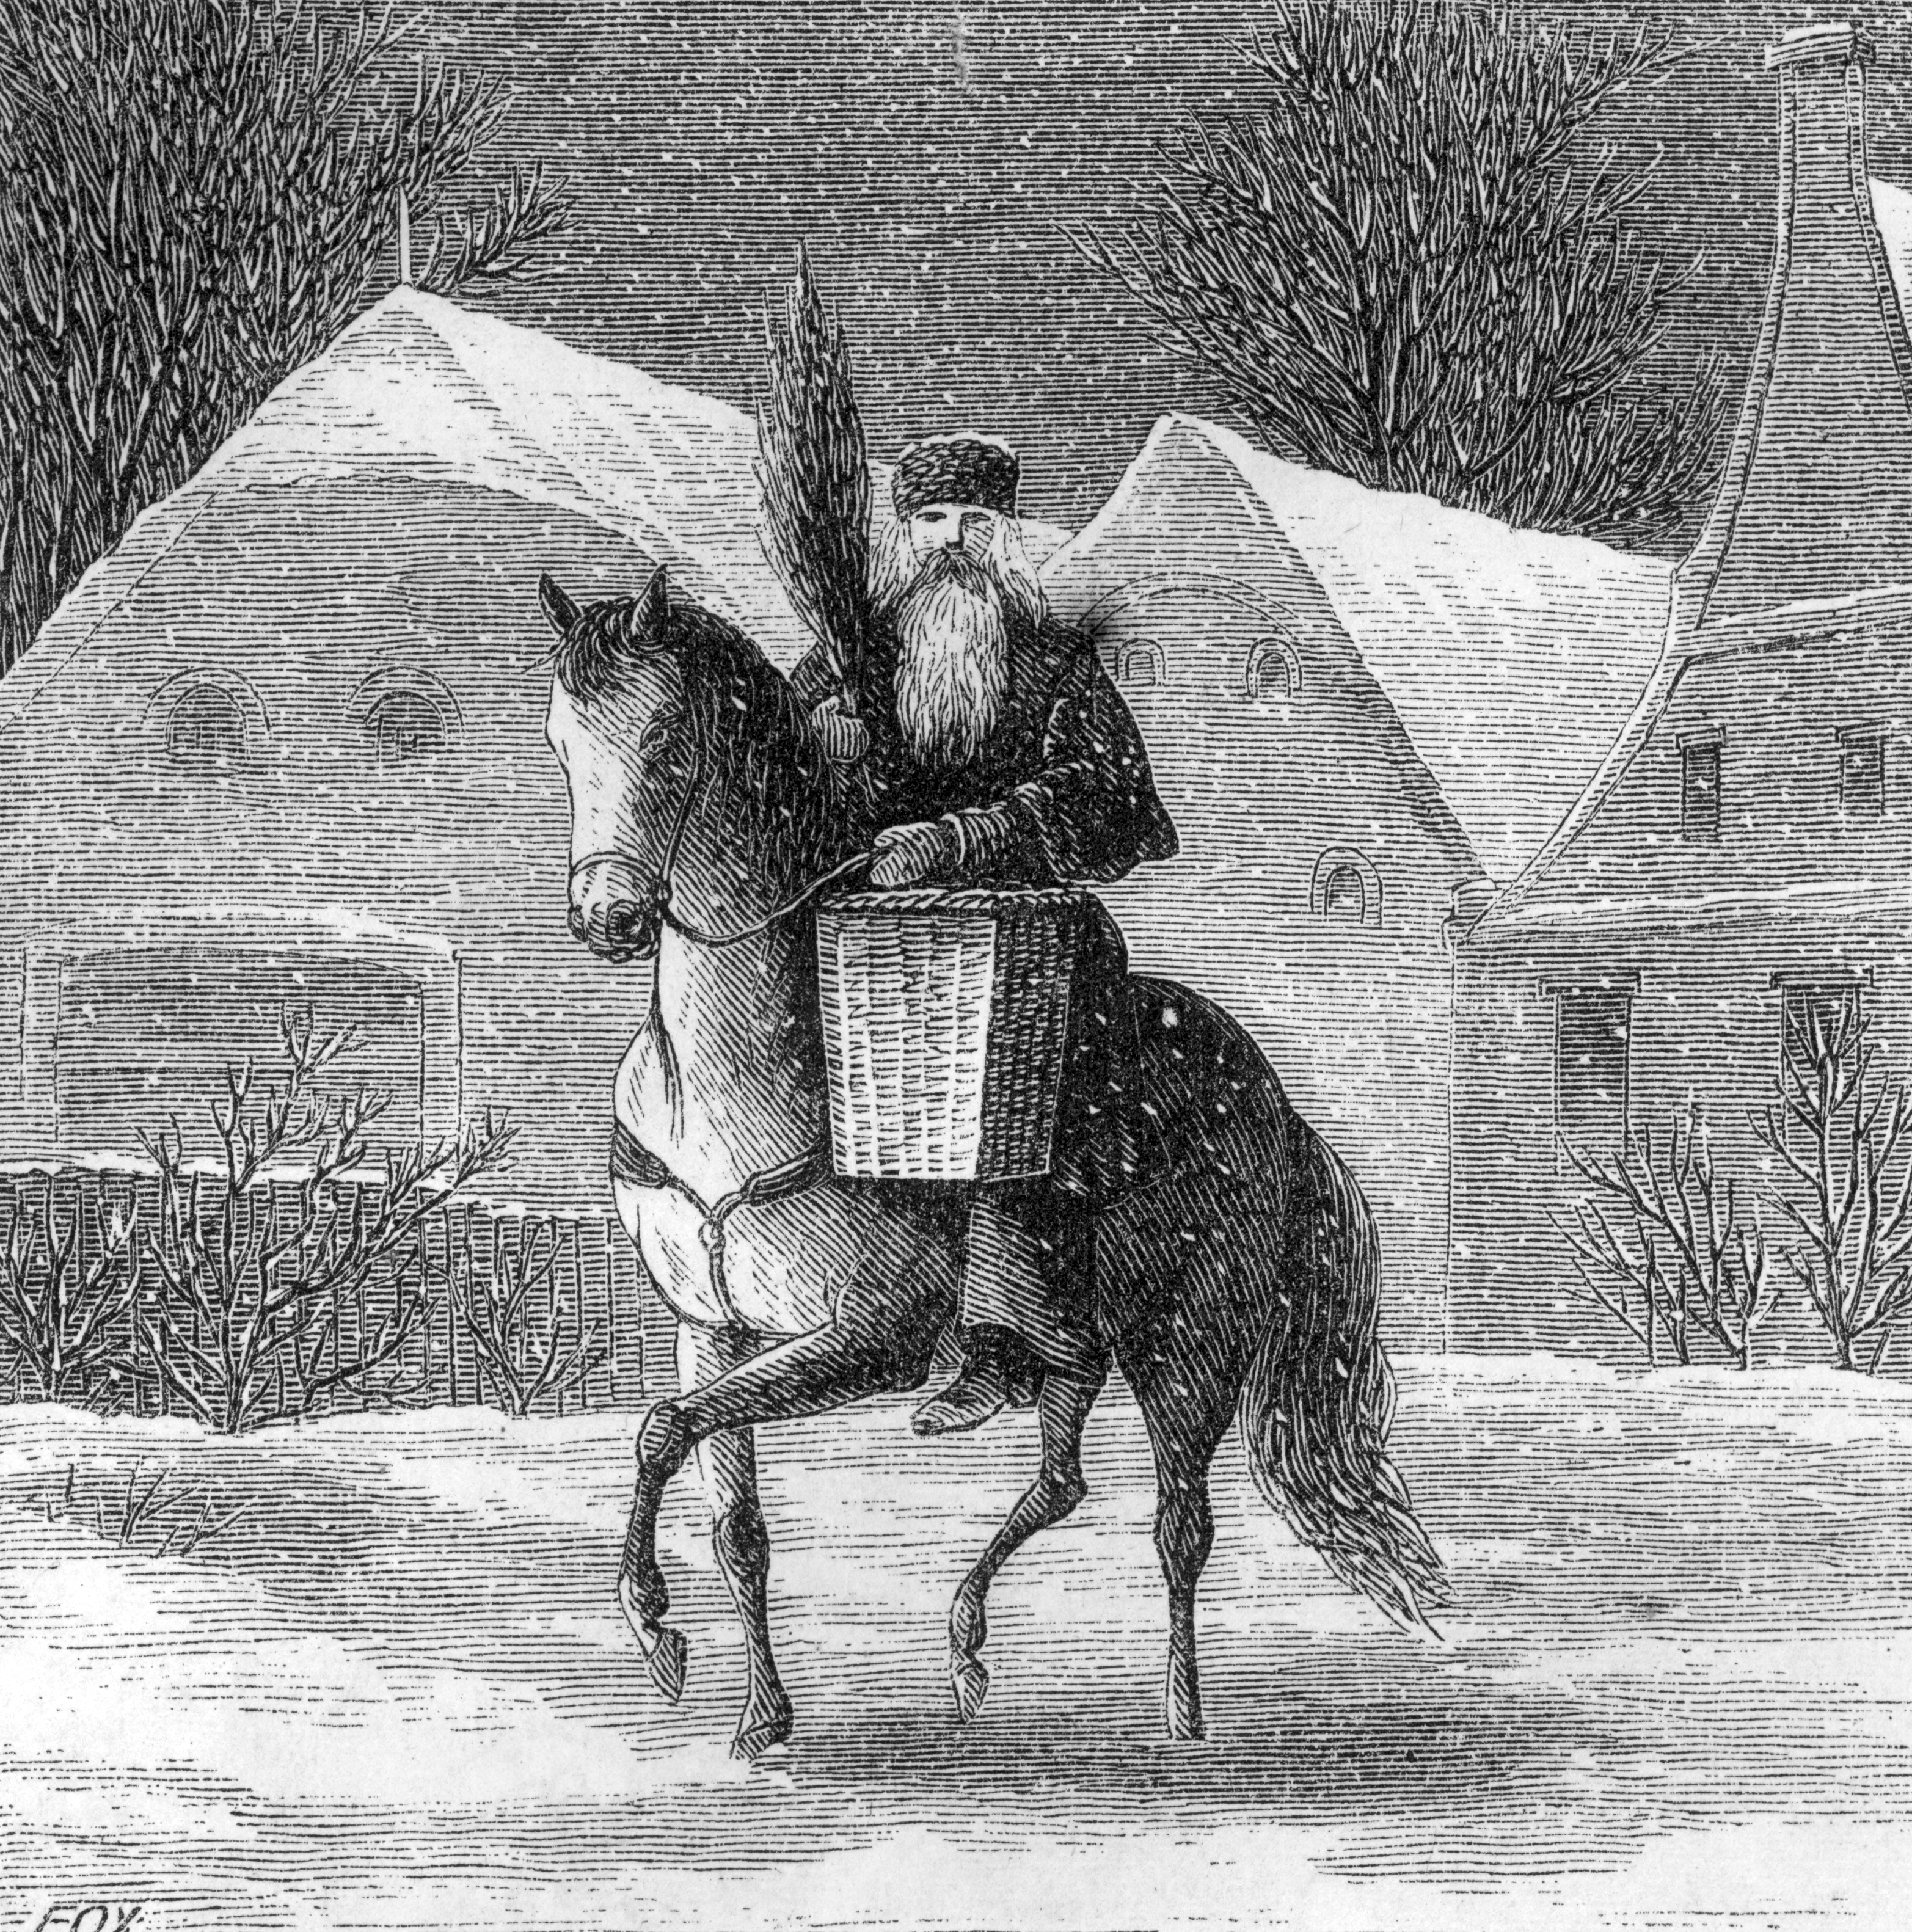 The story behind Santa Claus from St. Nicholas to today's jolly gift-giver